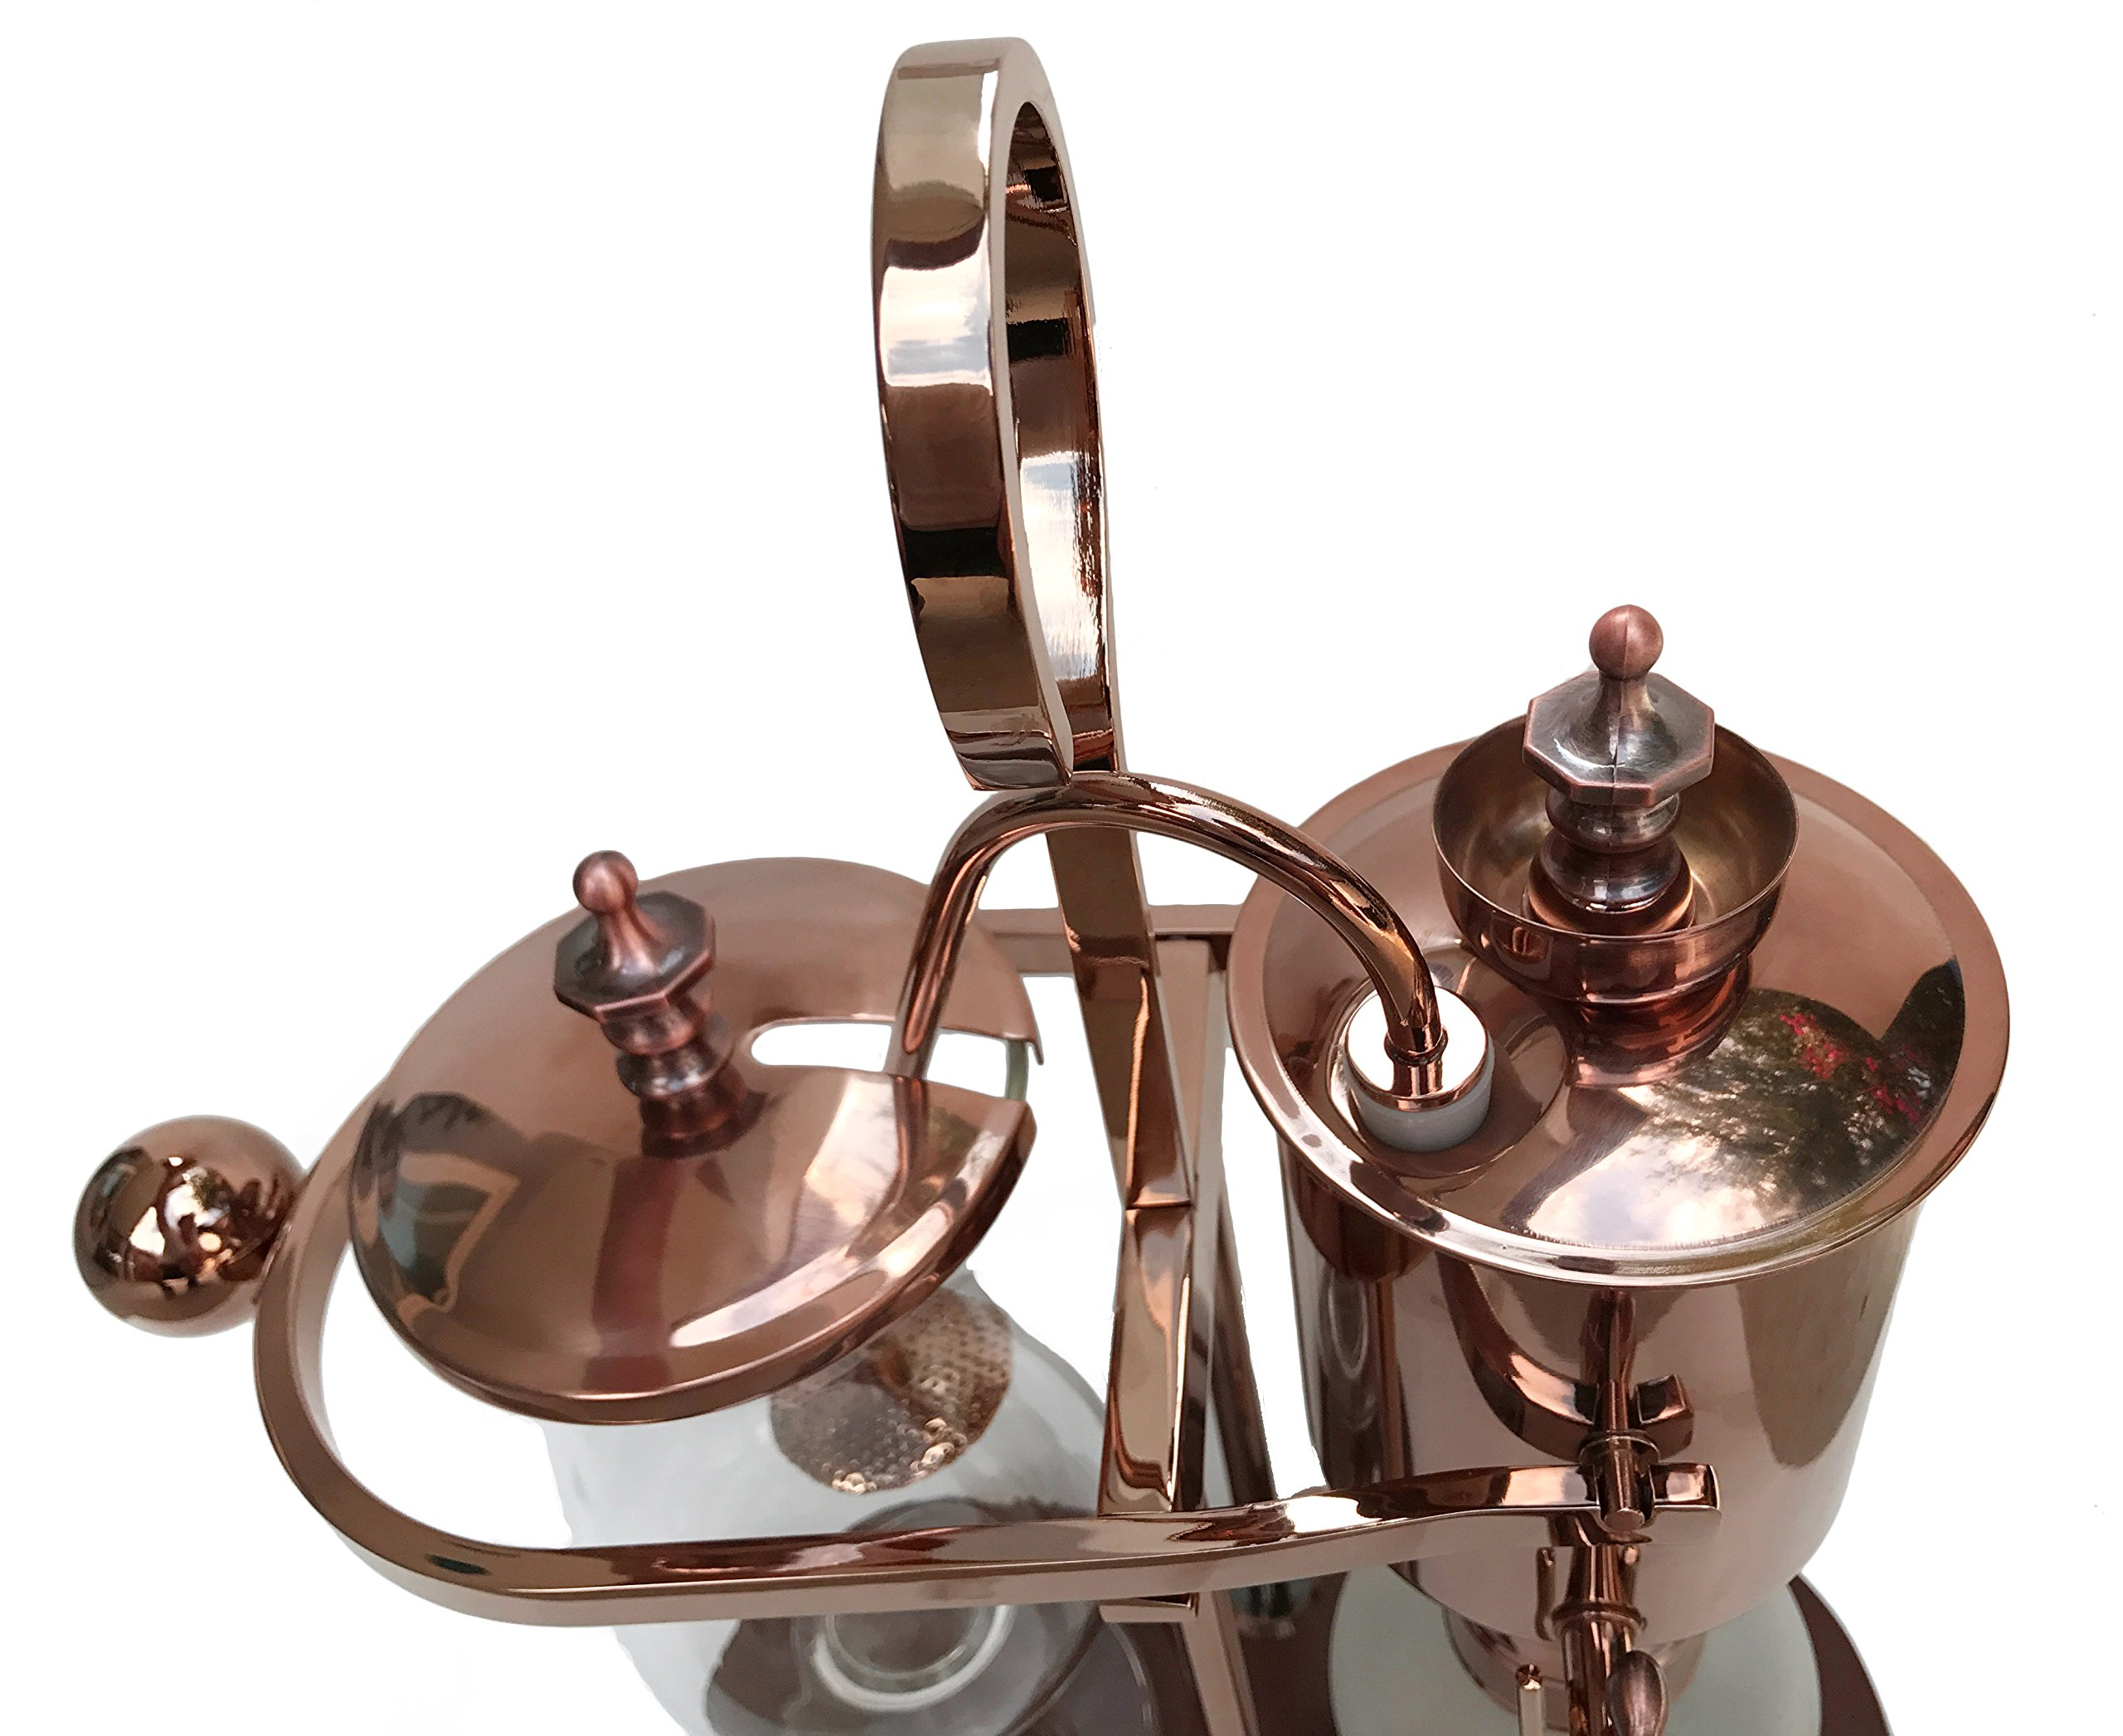 Nispira Belgian Belgium Luxury Royal Family Balance Syphon Siphon Coffee Maker Copper Color, 1 set by Nispira (Image #2)